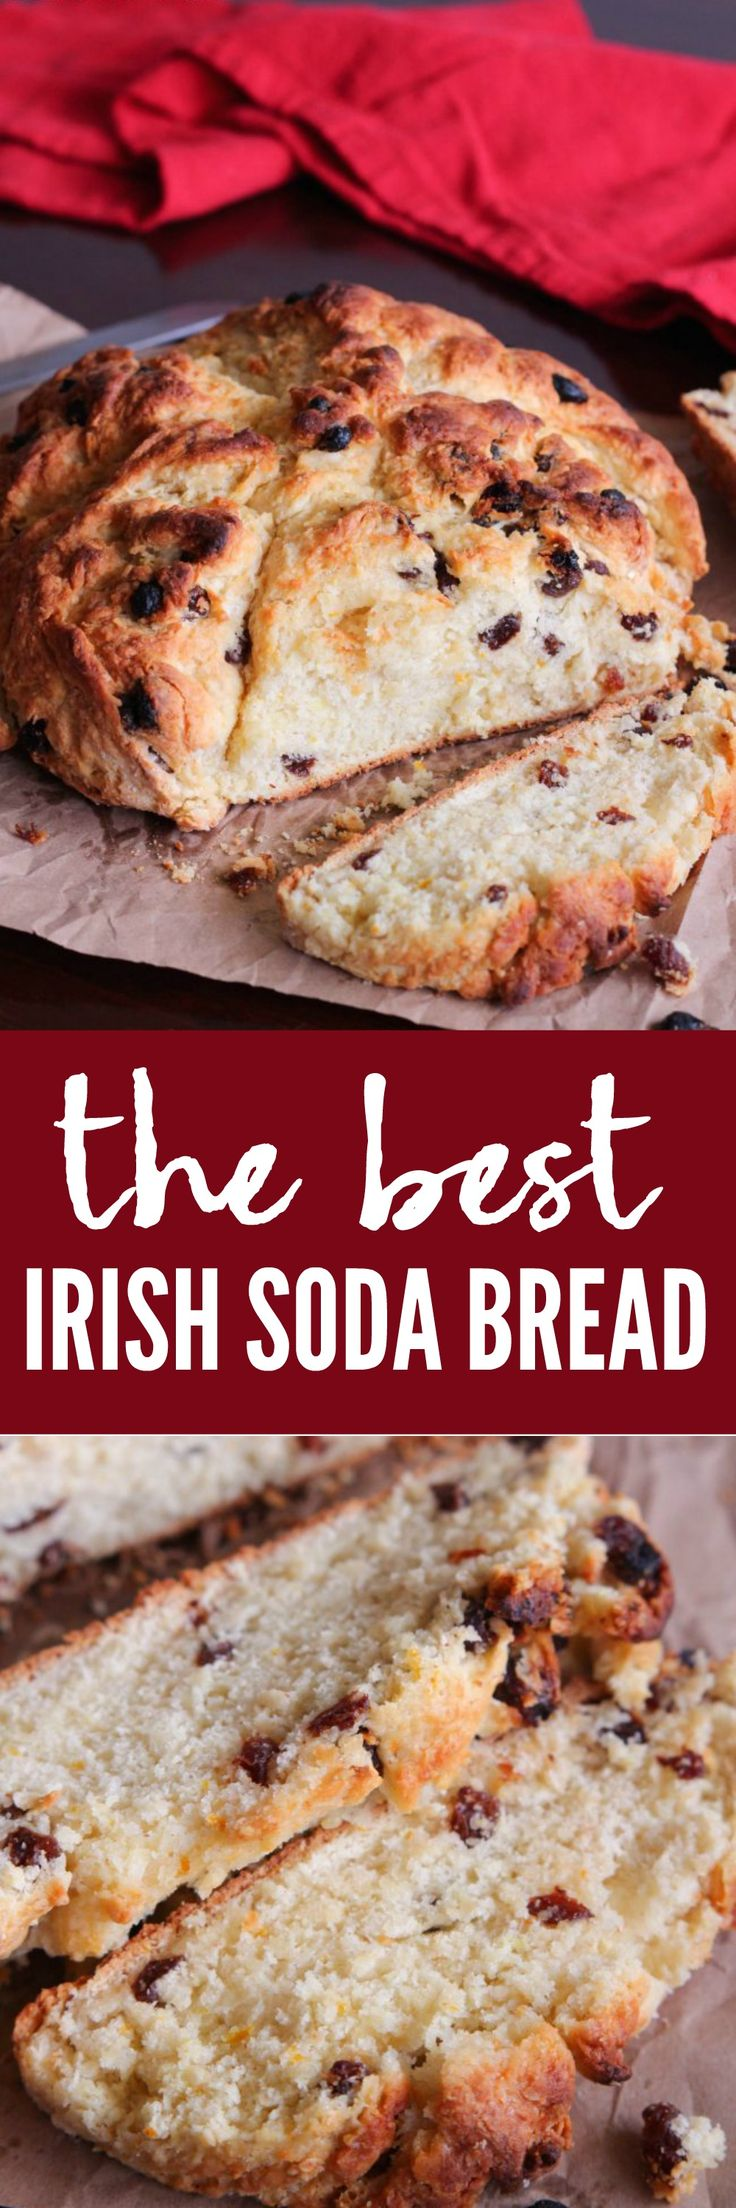 The Best Irish Soda Bread is so easy to make and comes out with a crisp buttery crust and soft center. It has orange zest and raisins to add an amazing flavor. This will become a new favorite bread!